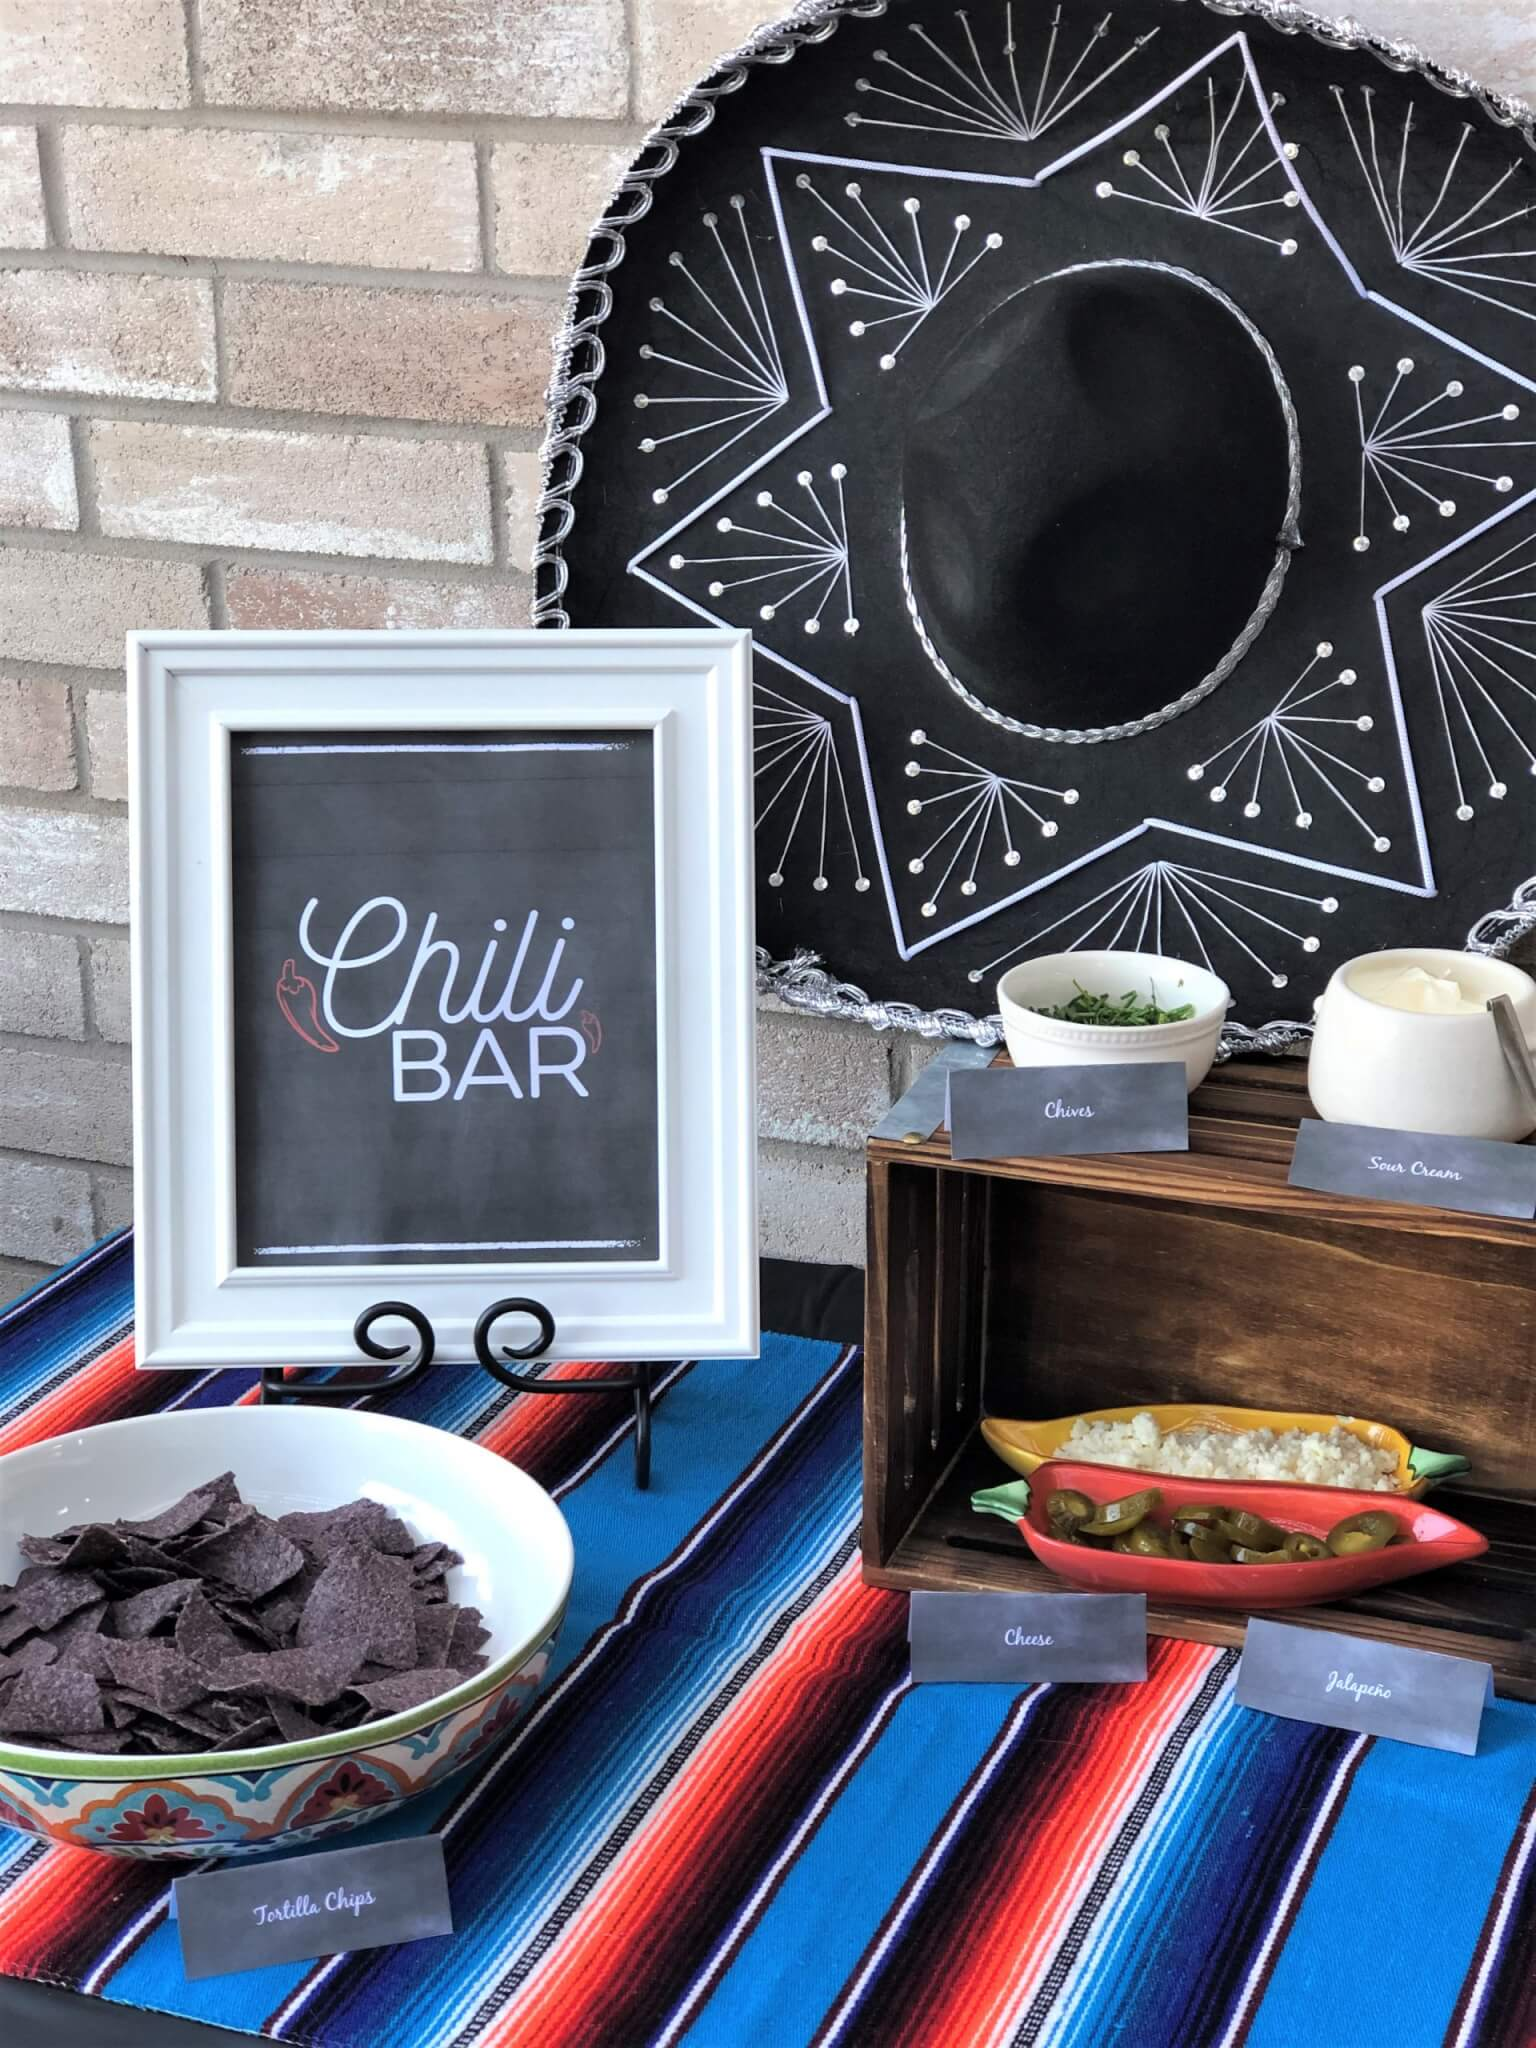 Chili Bar Party Tips and Ideas with free printables